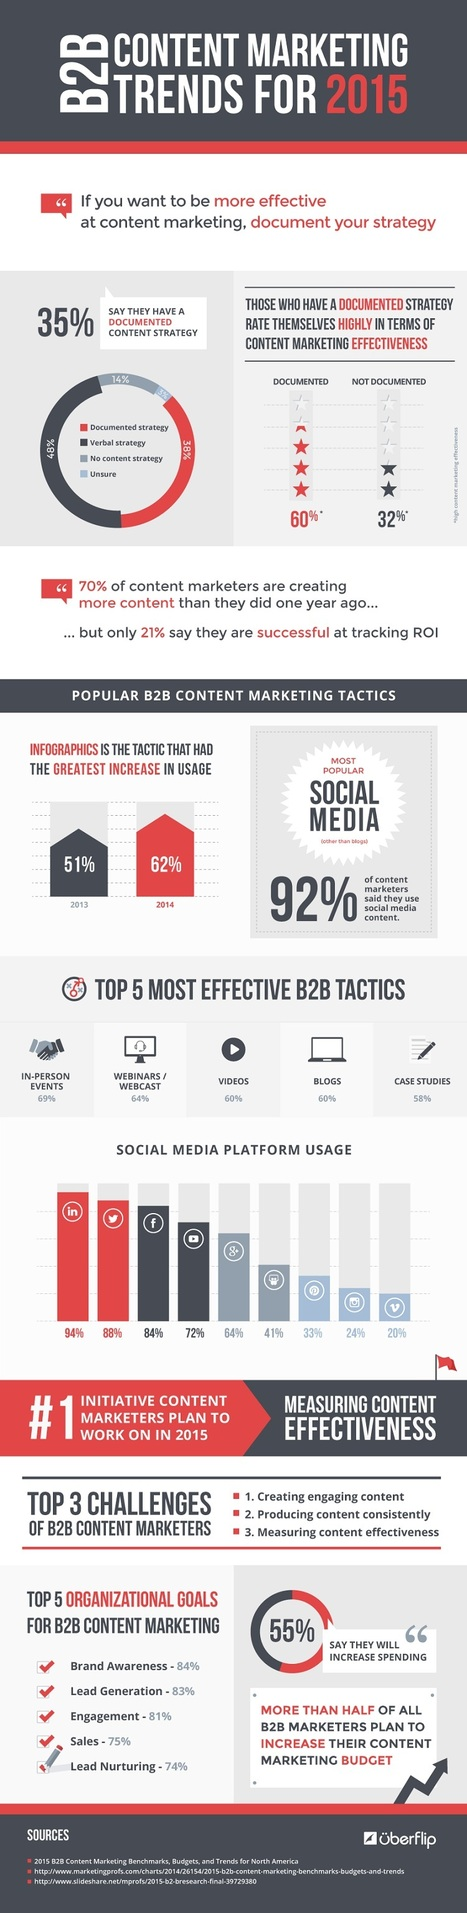 B2B Content Marketing Trends for 2015 [Infographic] | Digital | Scoop.it